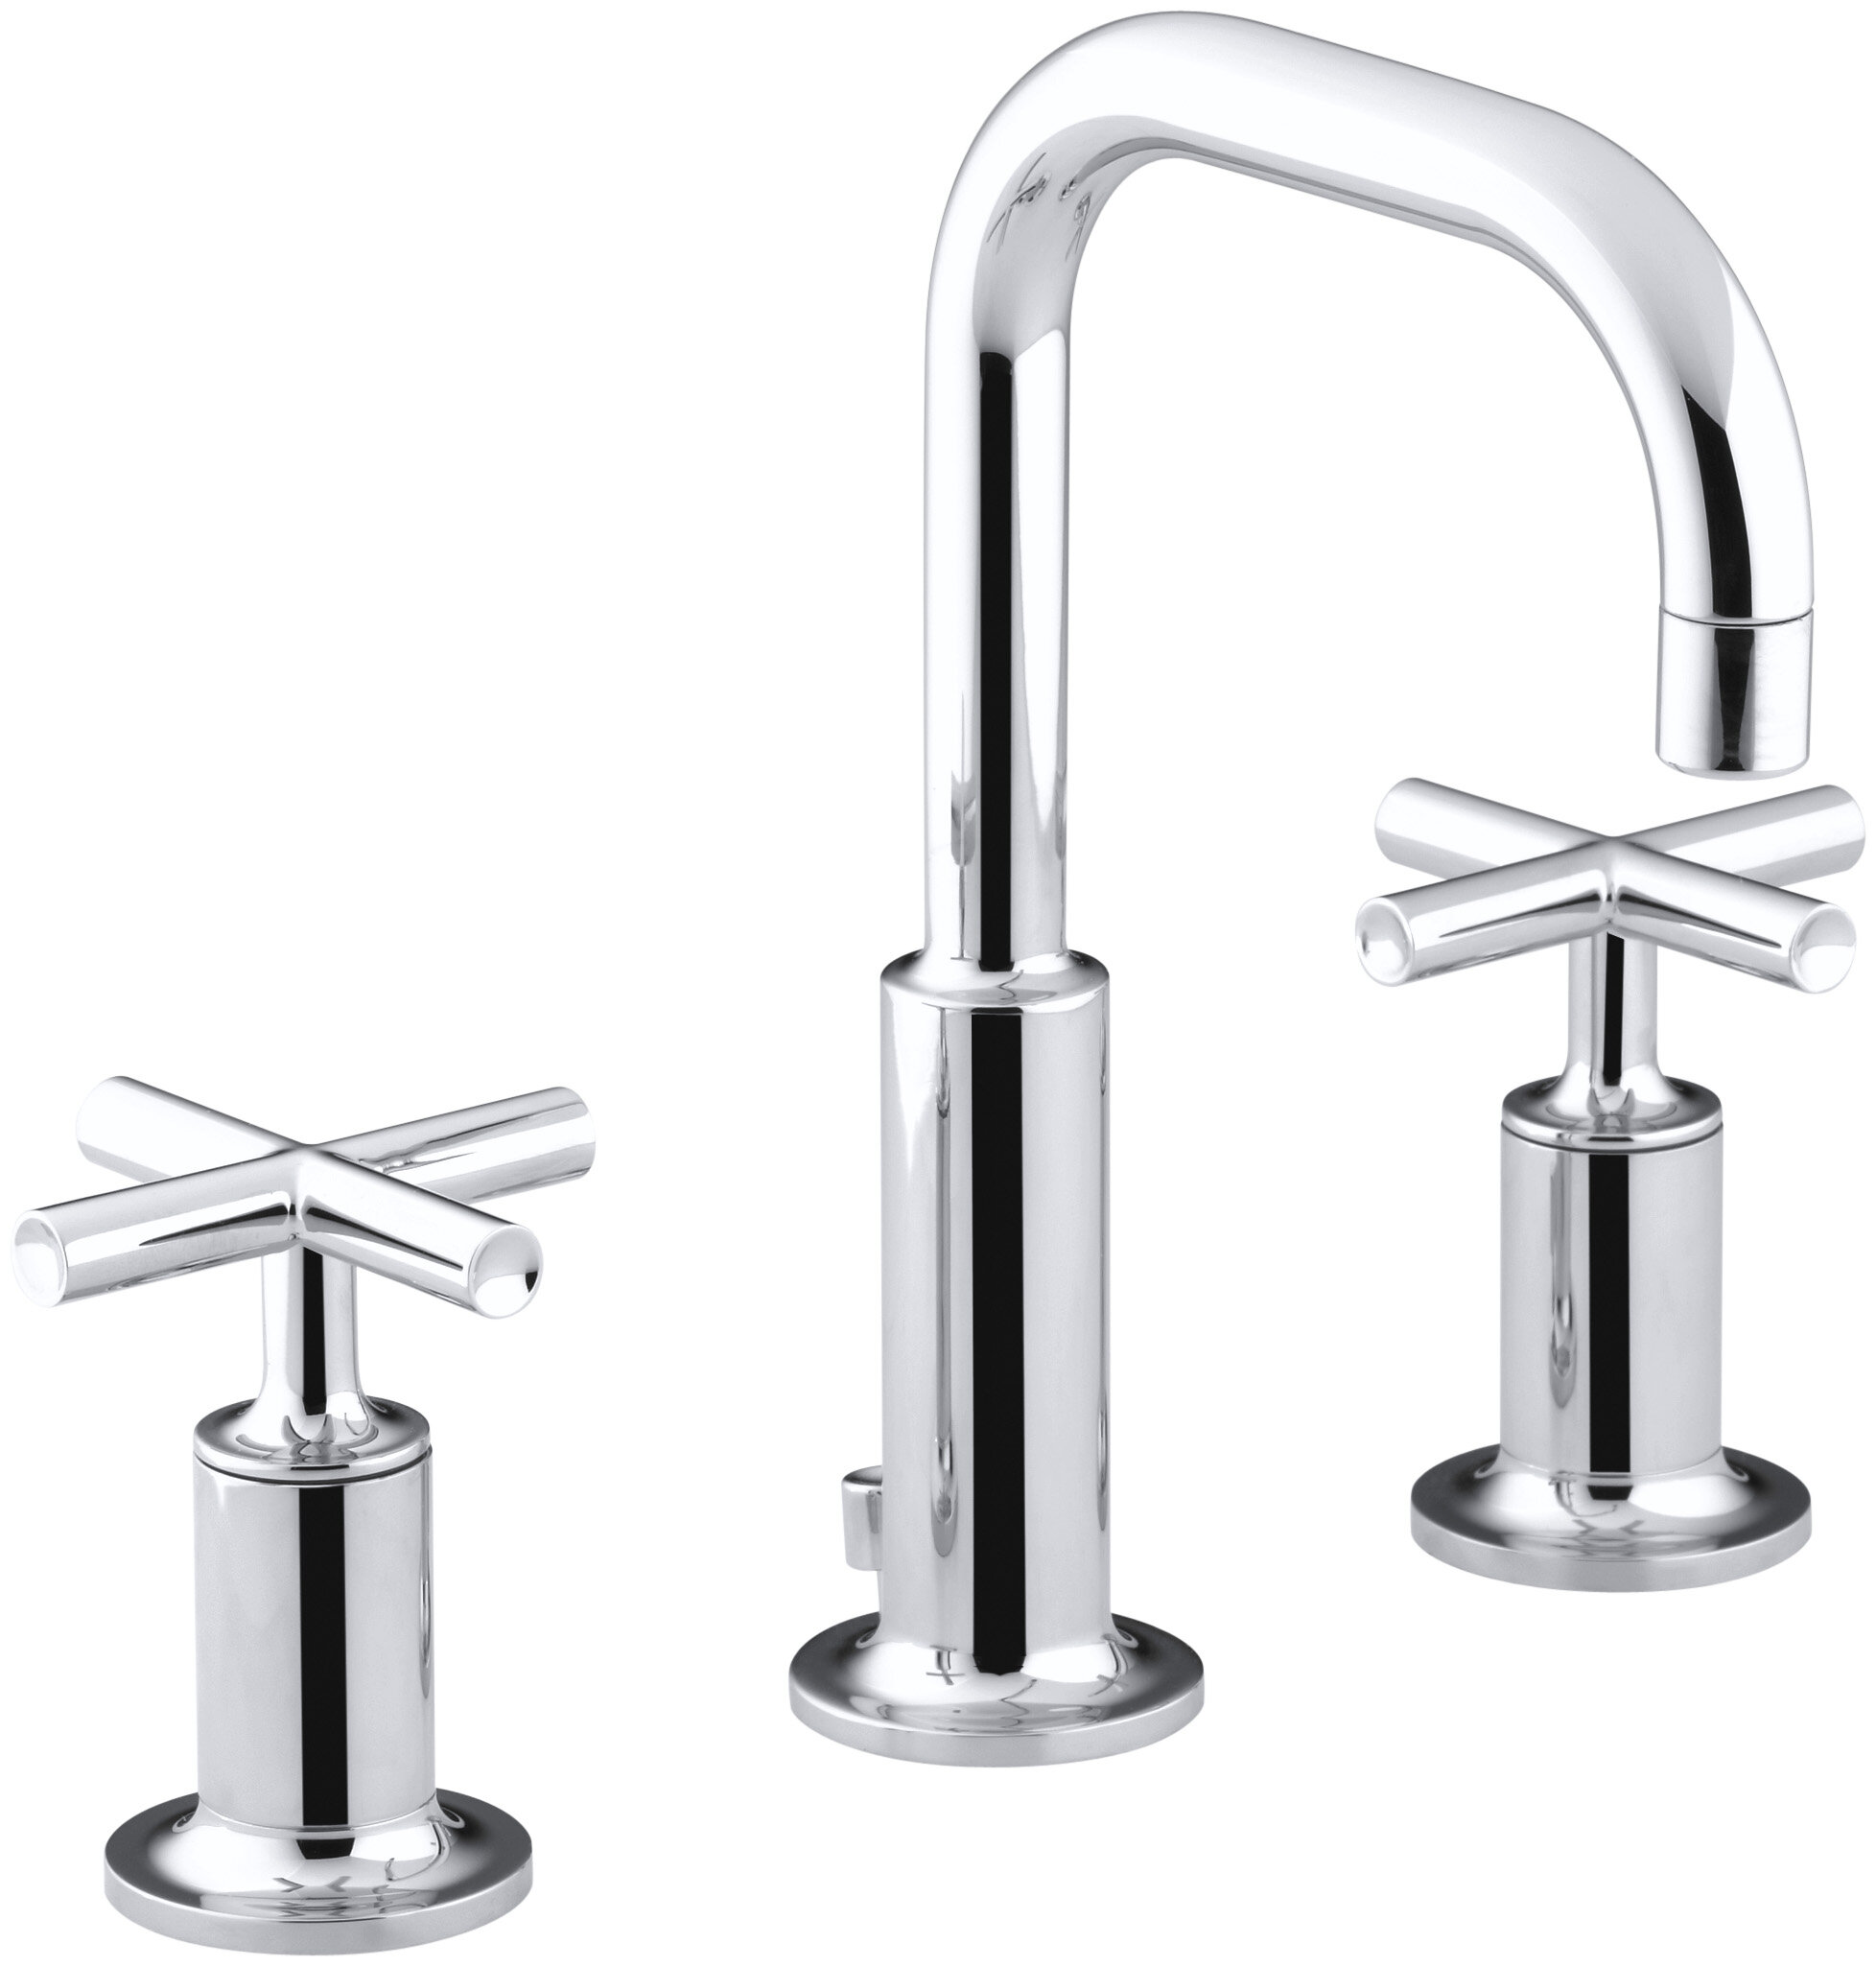 Bathroom Faucets.Kohler Purist Widespread Bathroom Faucet With Drain Assembly